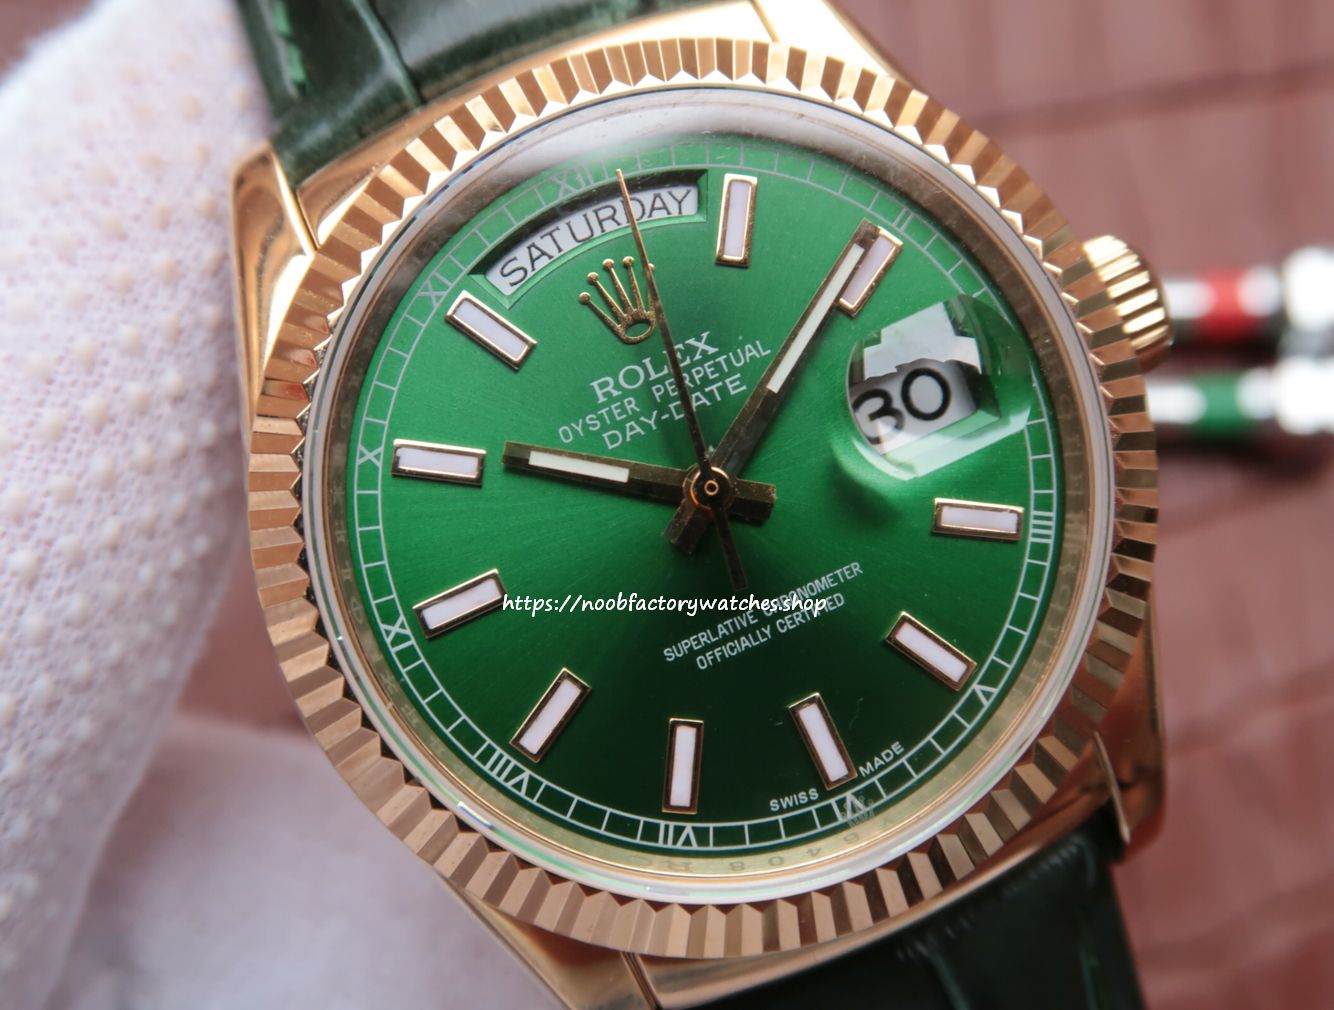 bf96cfe9e39 Rolex Rolex Oyster Perpetual Day-Date Watch 118138 - The N Factory